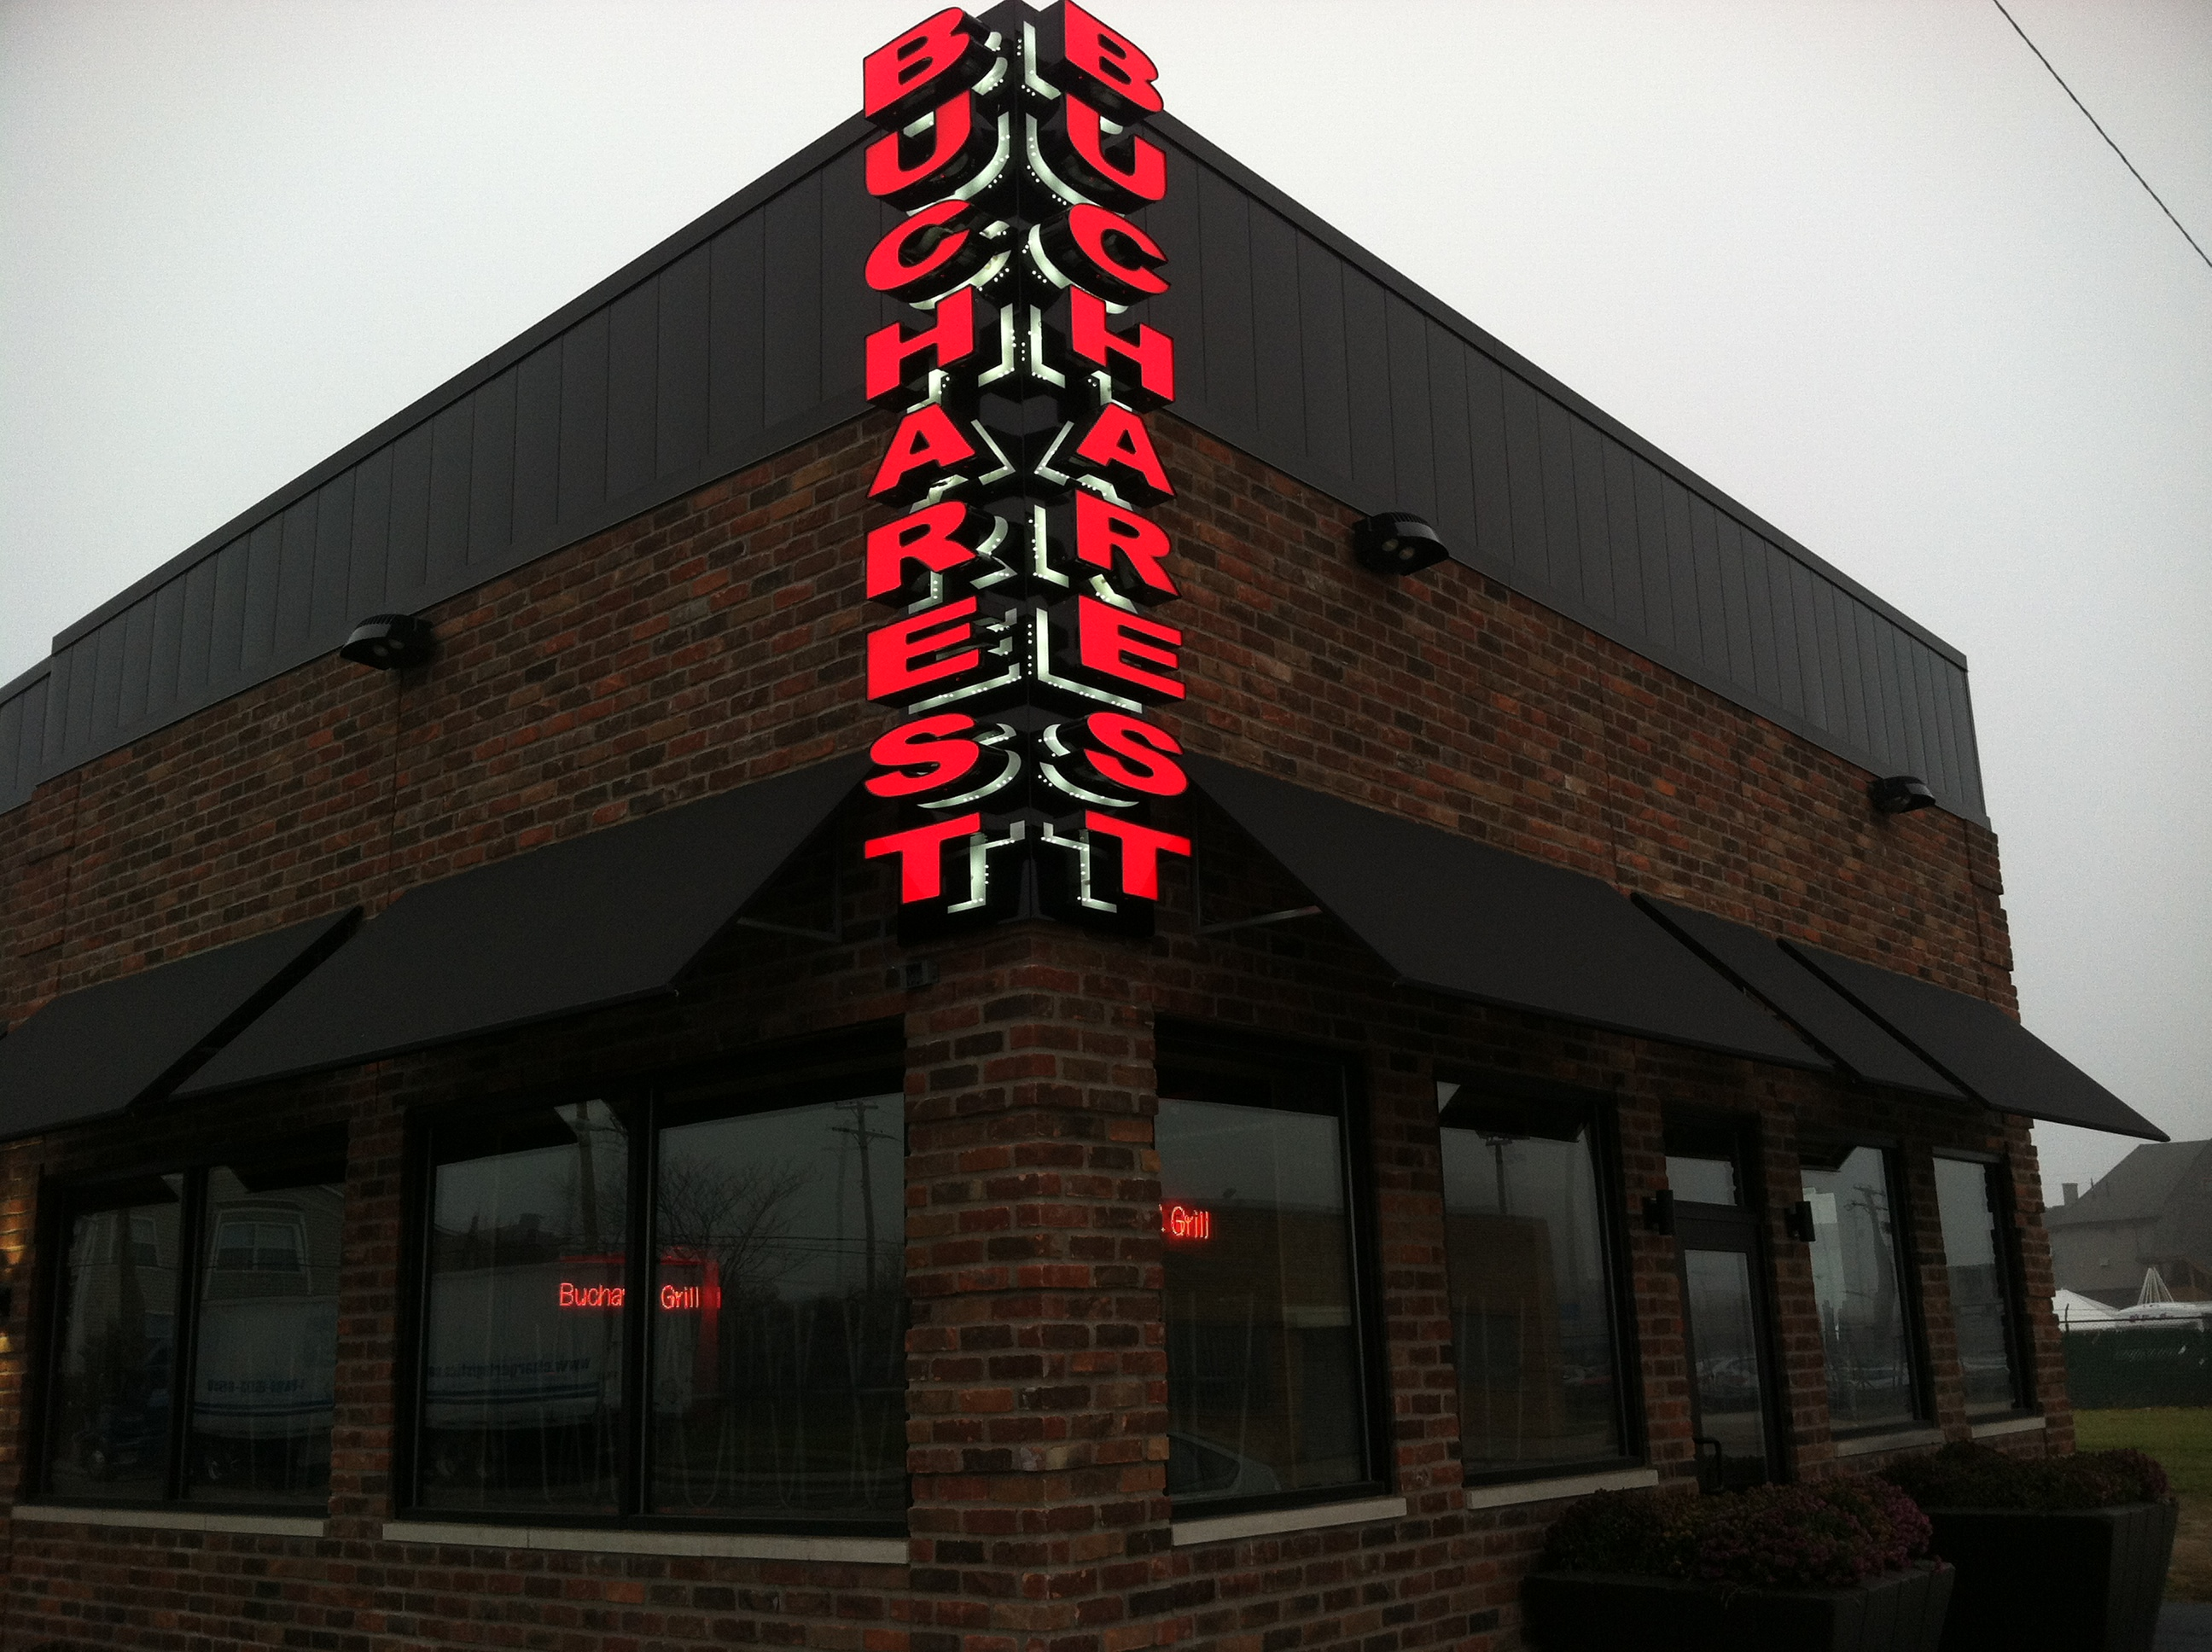 Bucharest Grill took over the former Dave's Drive-in space on Piquette.